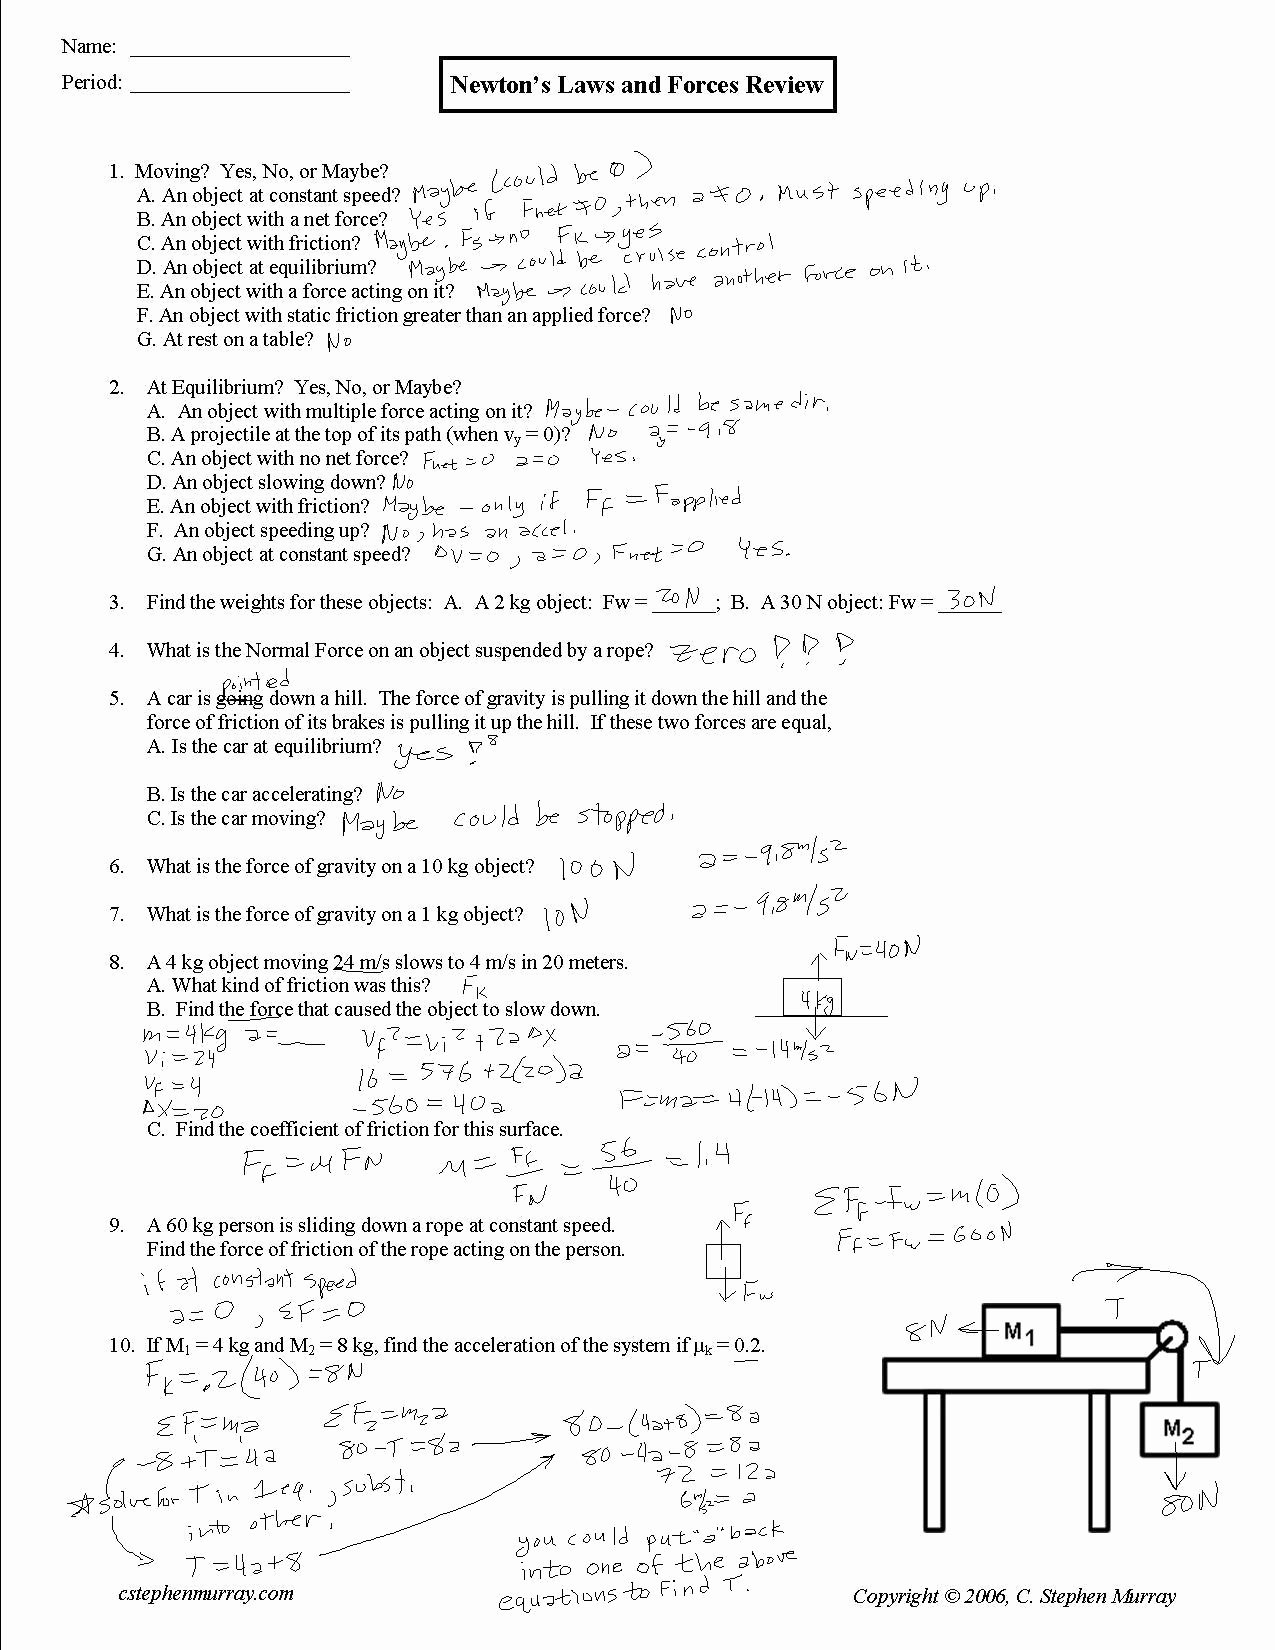 Newton's Second Law Worksheet Answers Lovely Newtons Second Law and Weight Worksheet Answer Key